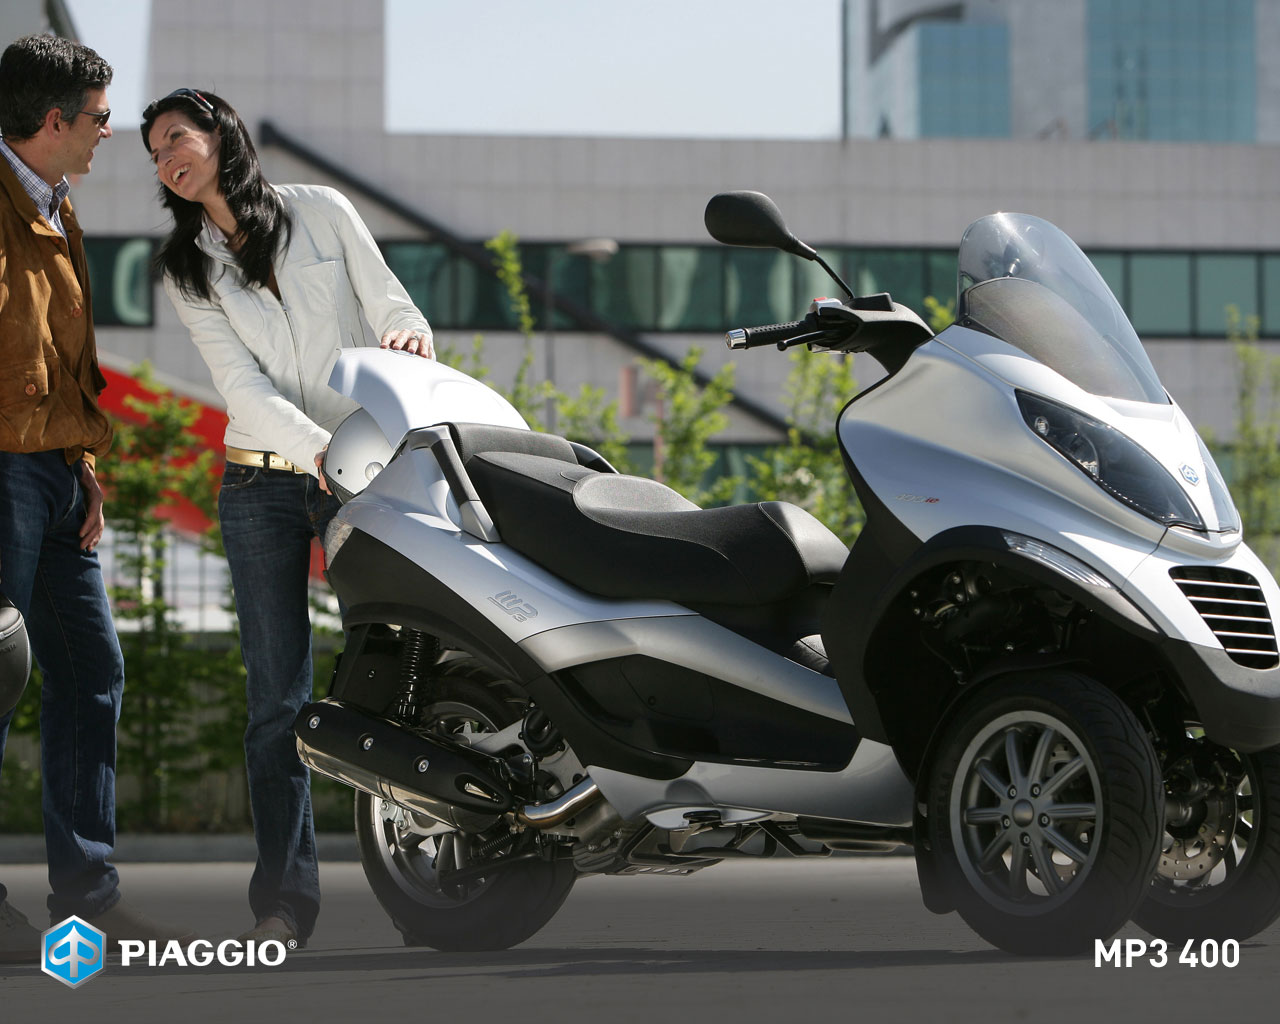 piaggio mp3 400 specs - 2008, 2009 - autoevolution